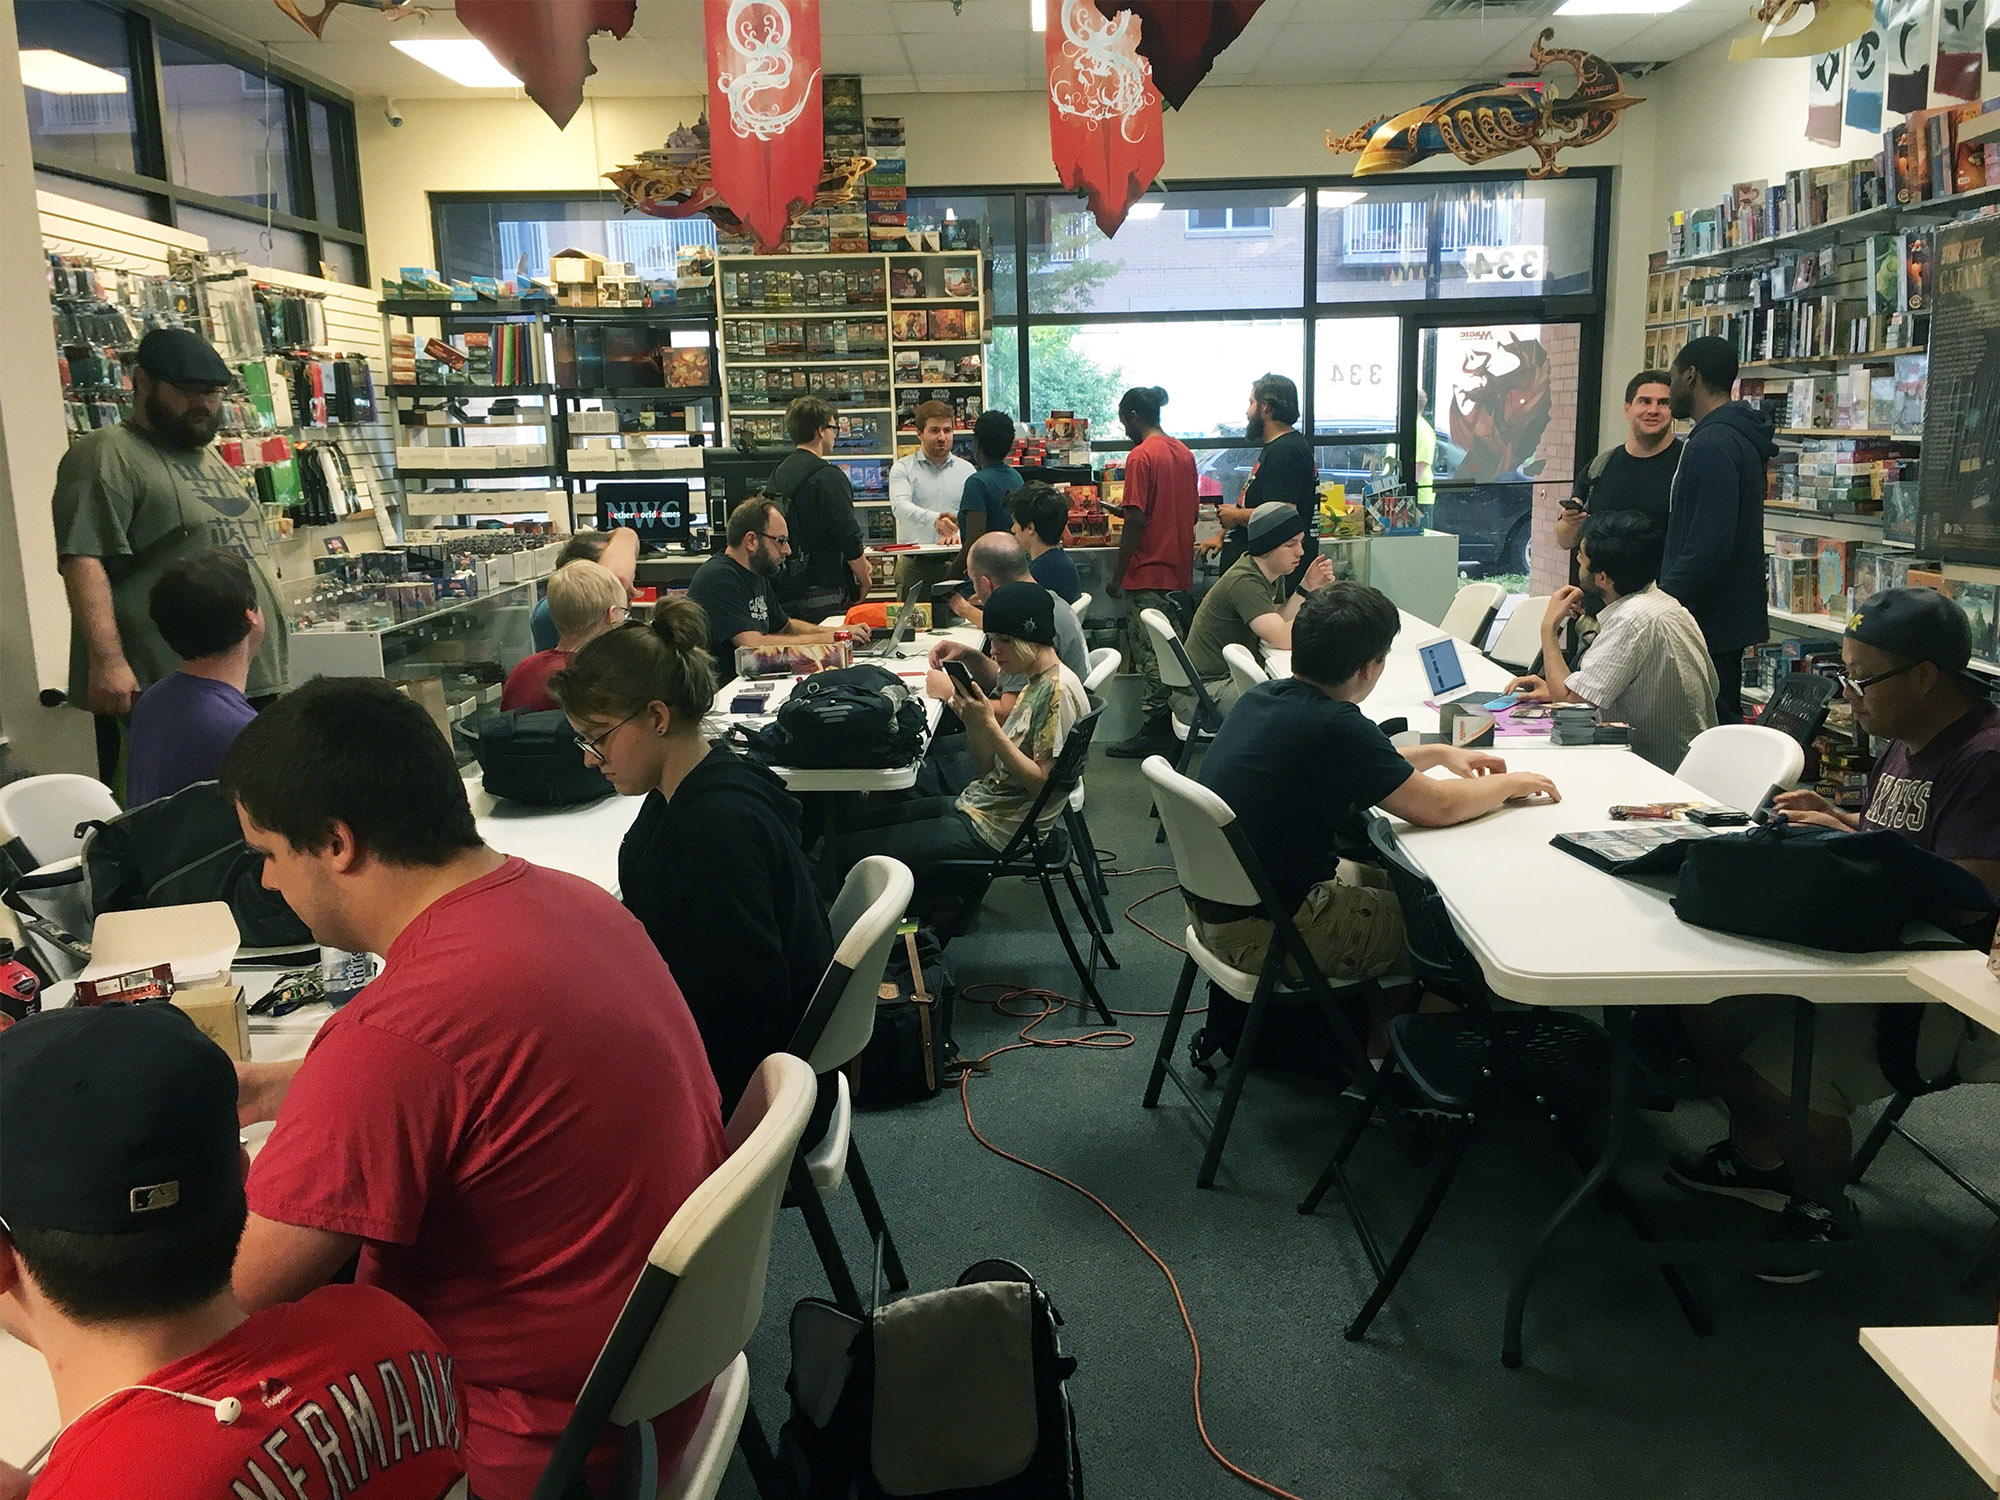 Friday Night Magic in progress at Netherworld Games in downtown Madison. Photo by Henry Solotaroff-Webber.